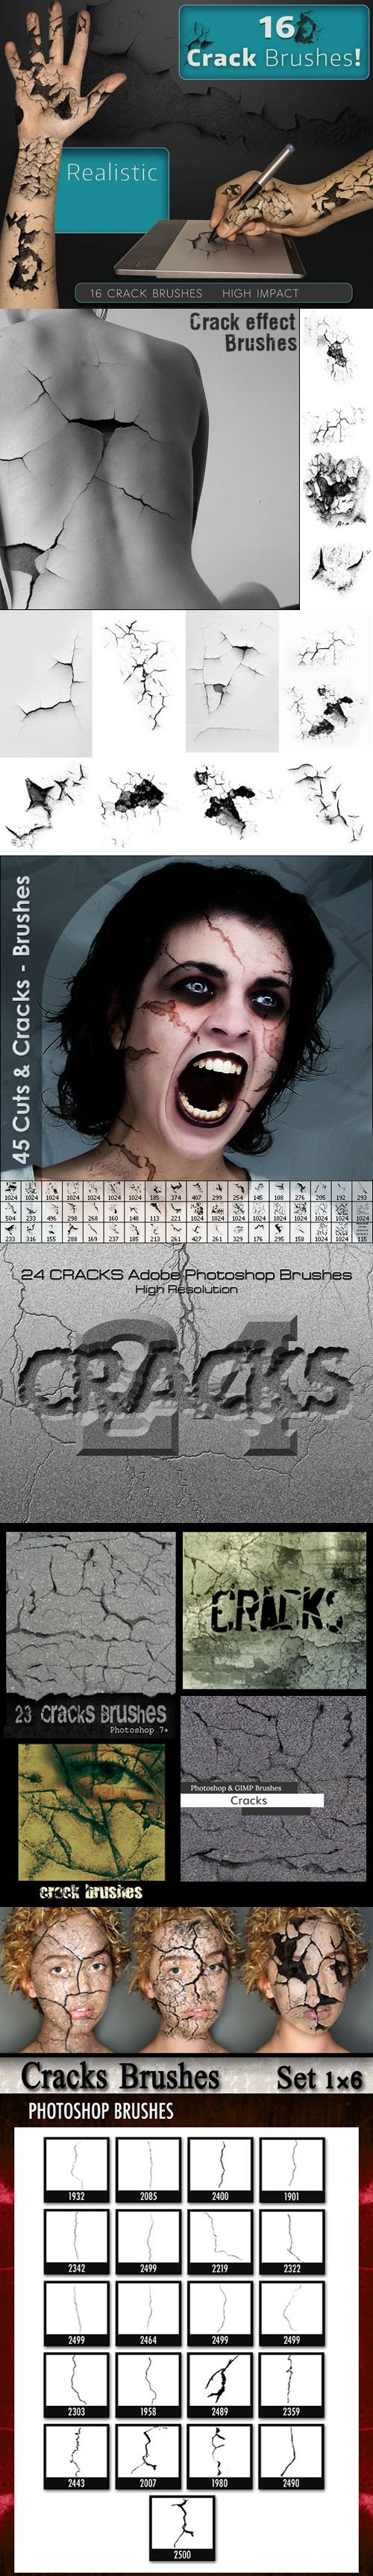 180+ Pretty Cuts and Cracks Brushes for Photoshop & Gimp